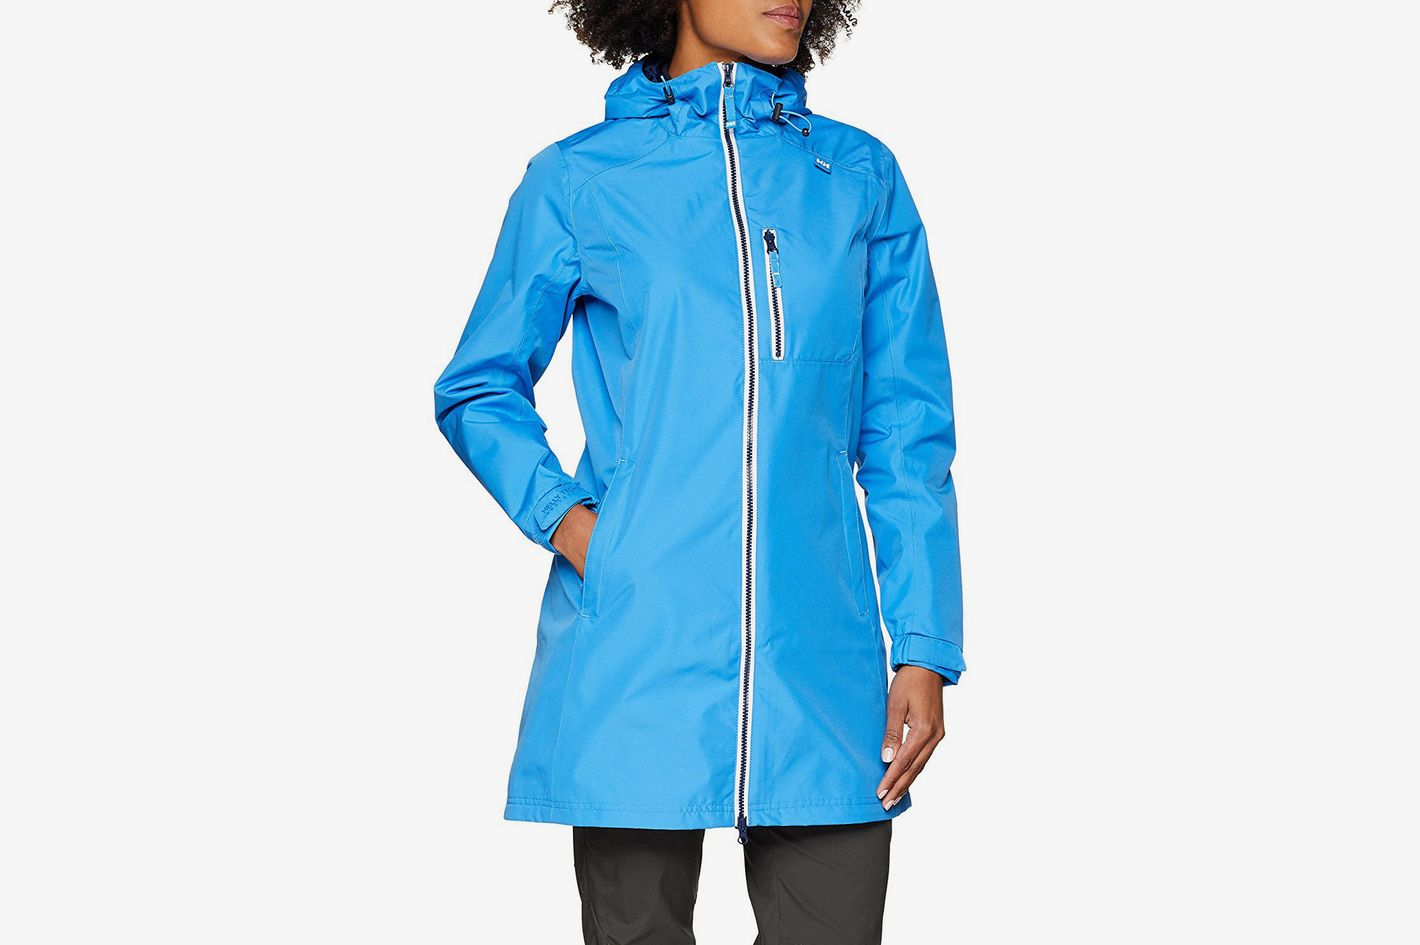 Helly Hansen Long Belfast Waterproof Breathable Raincoat